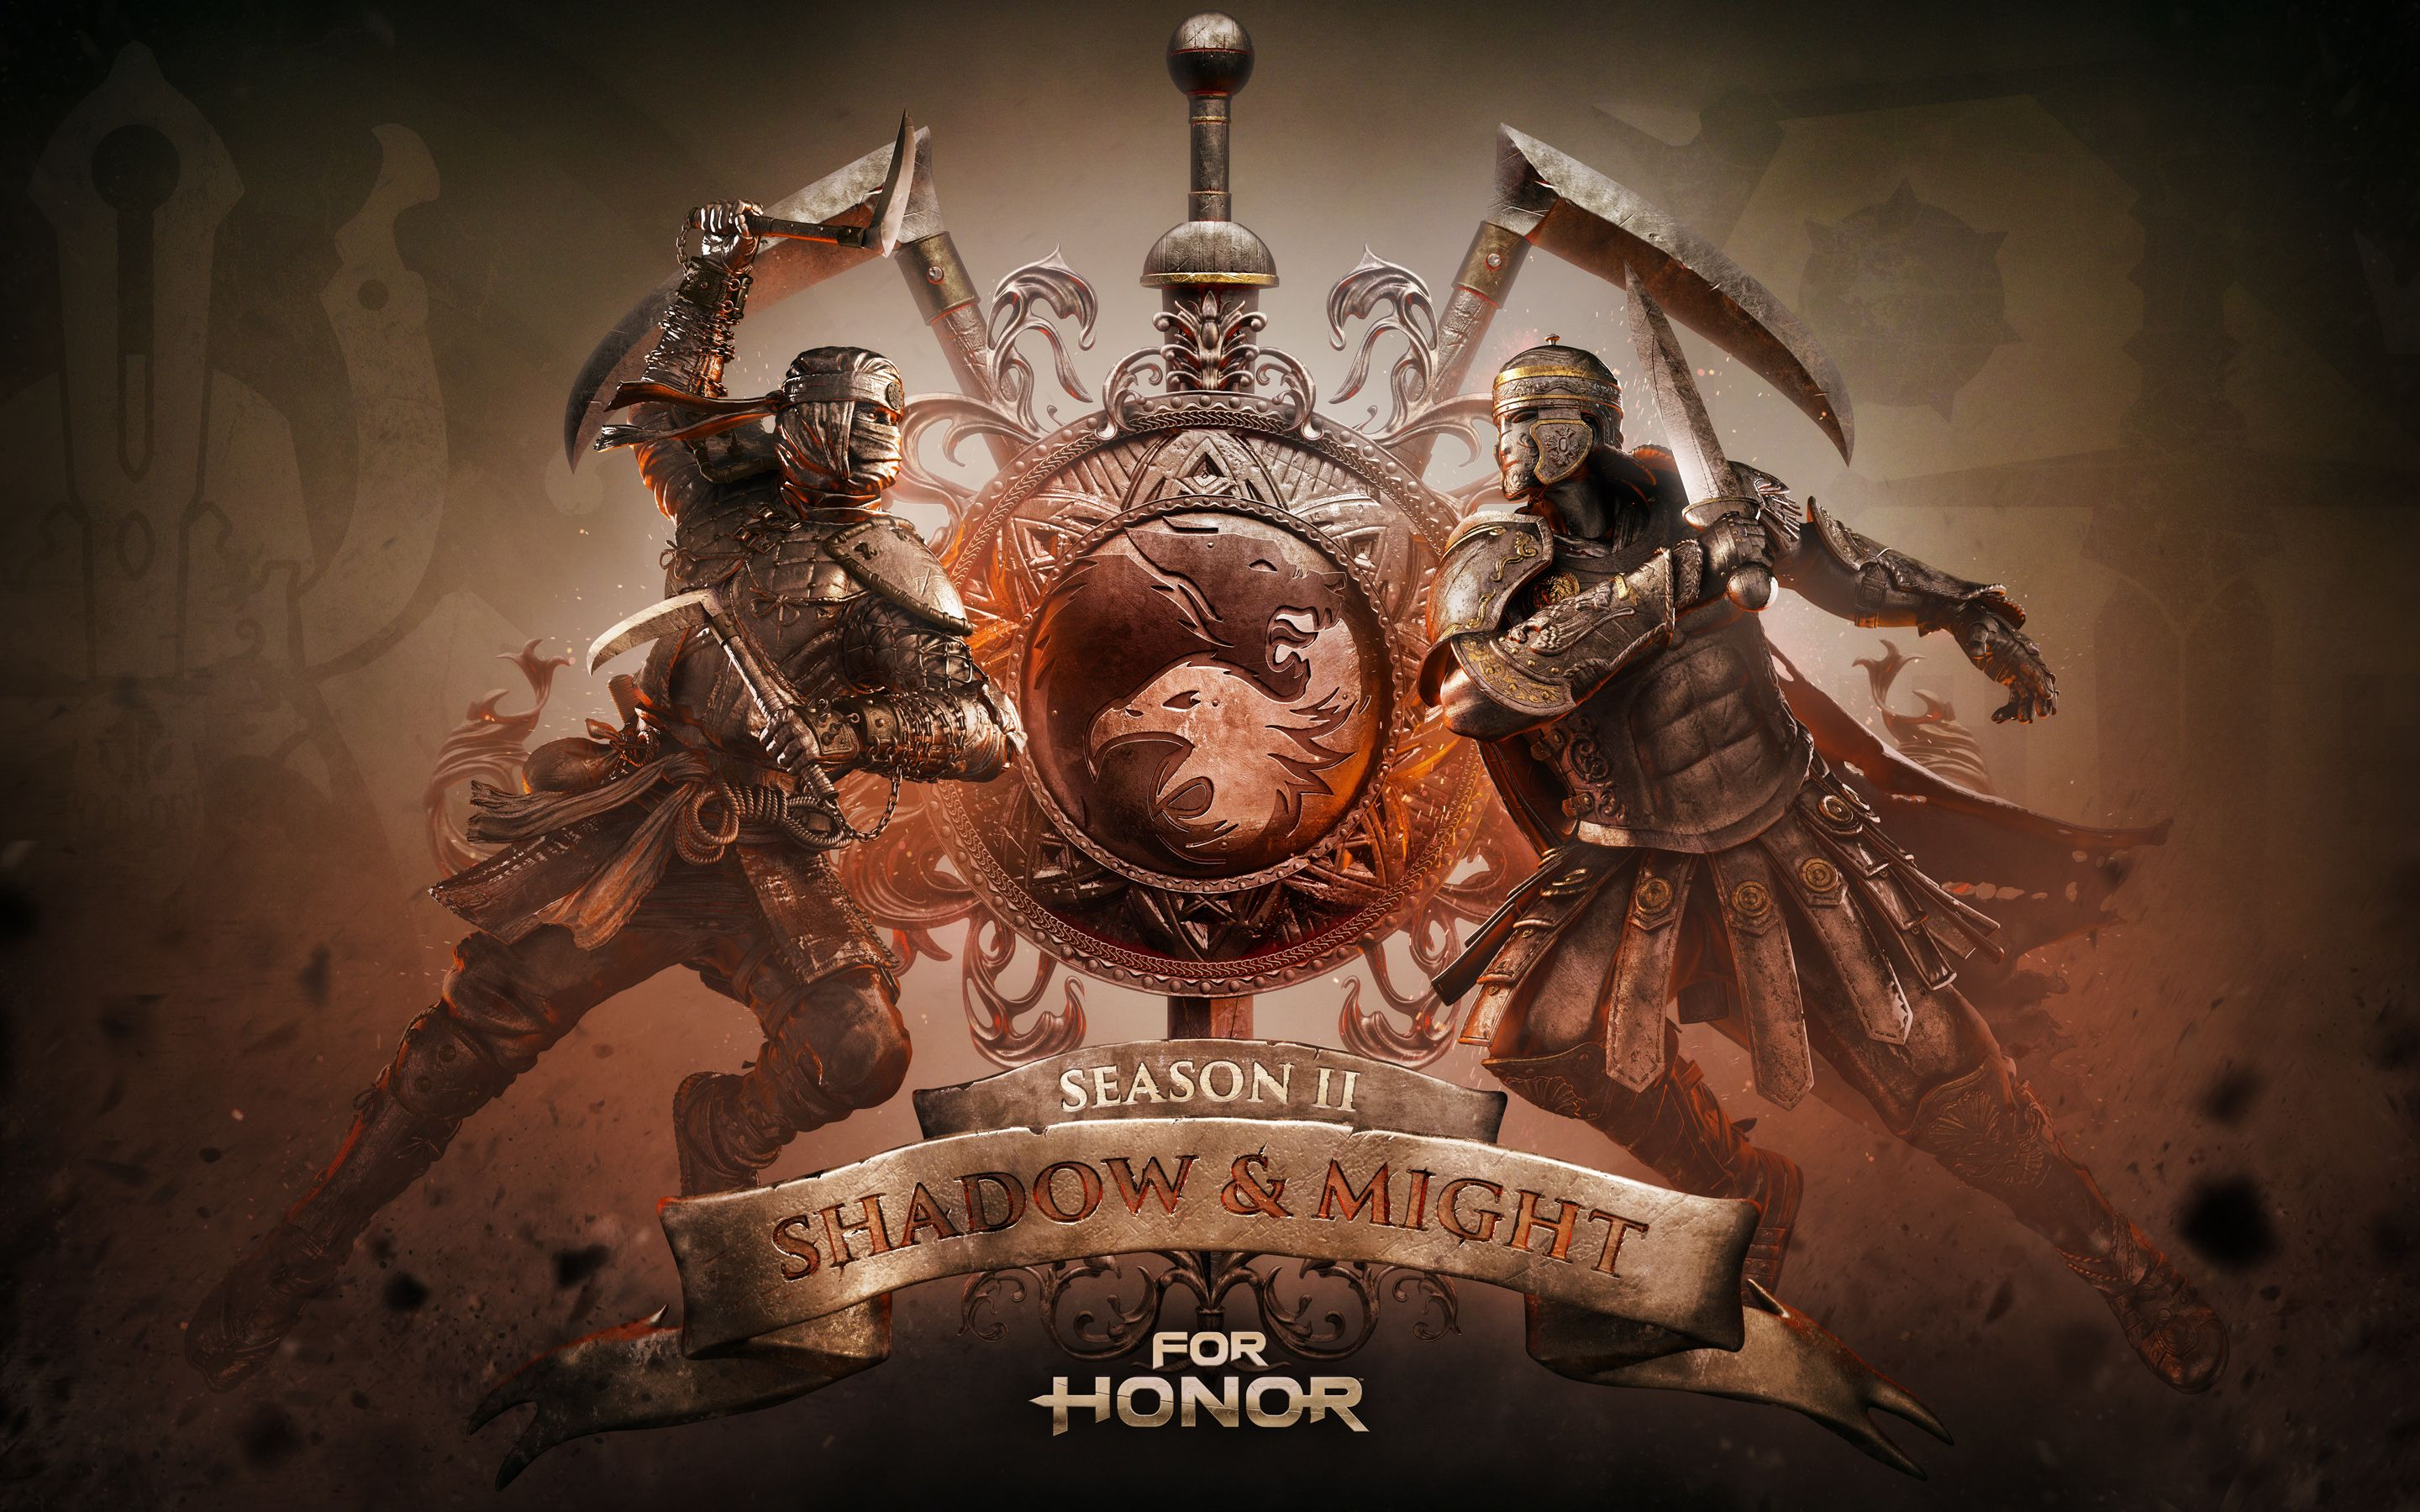 For Honor Season Two Shadow And Might Gaming Wallpapers Shadow Seasons